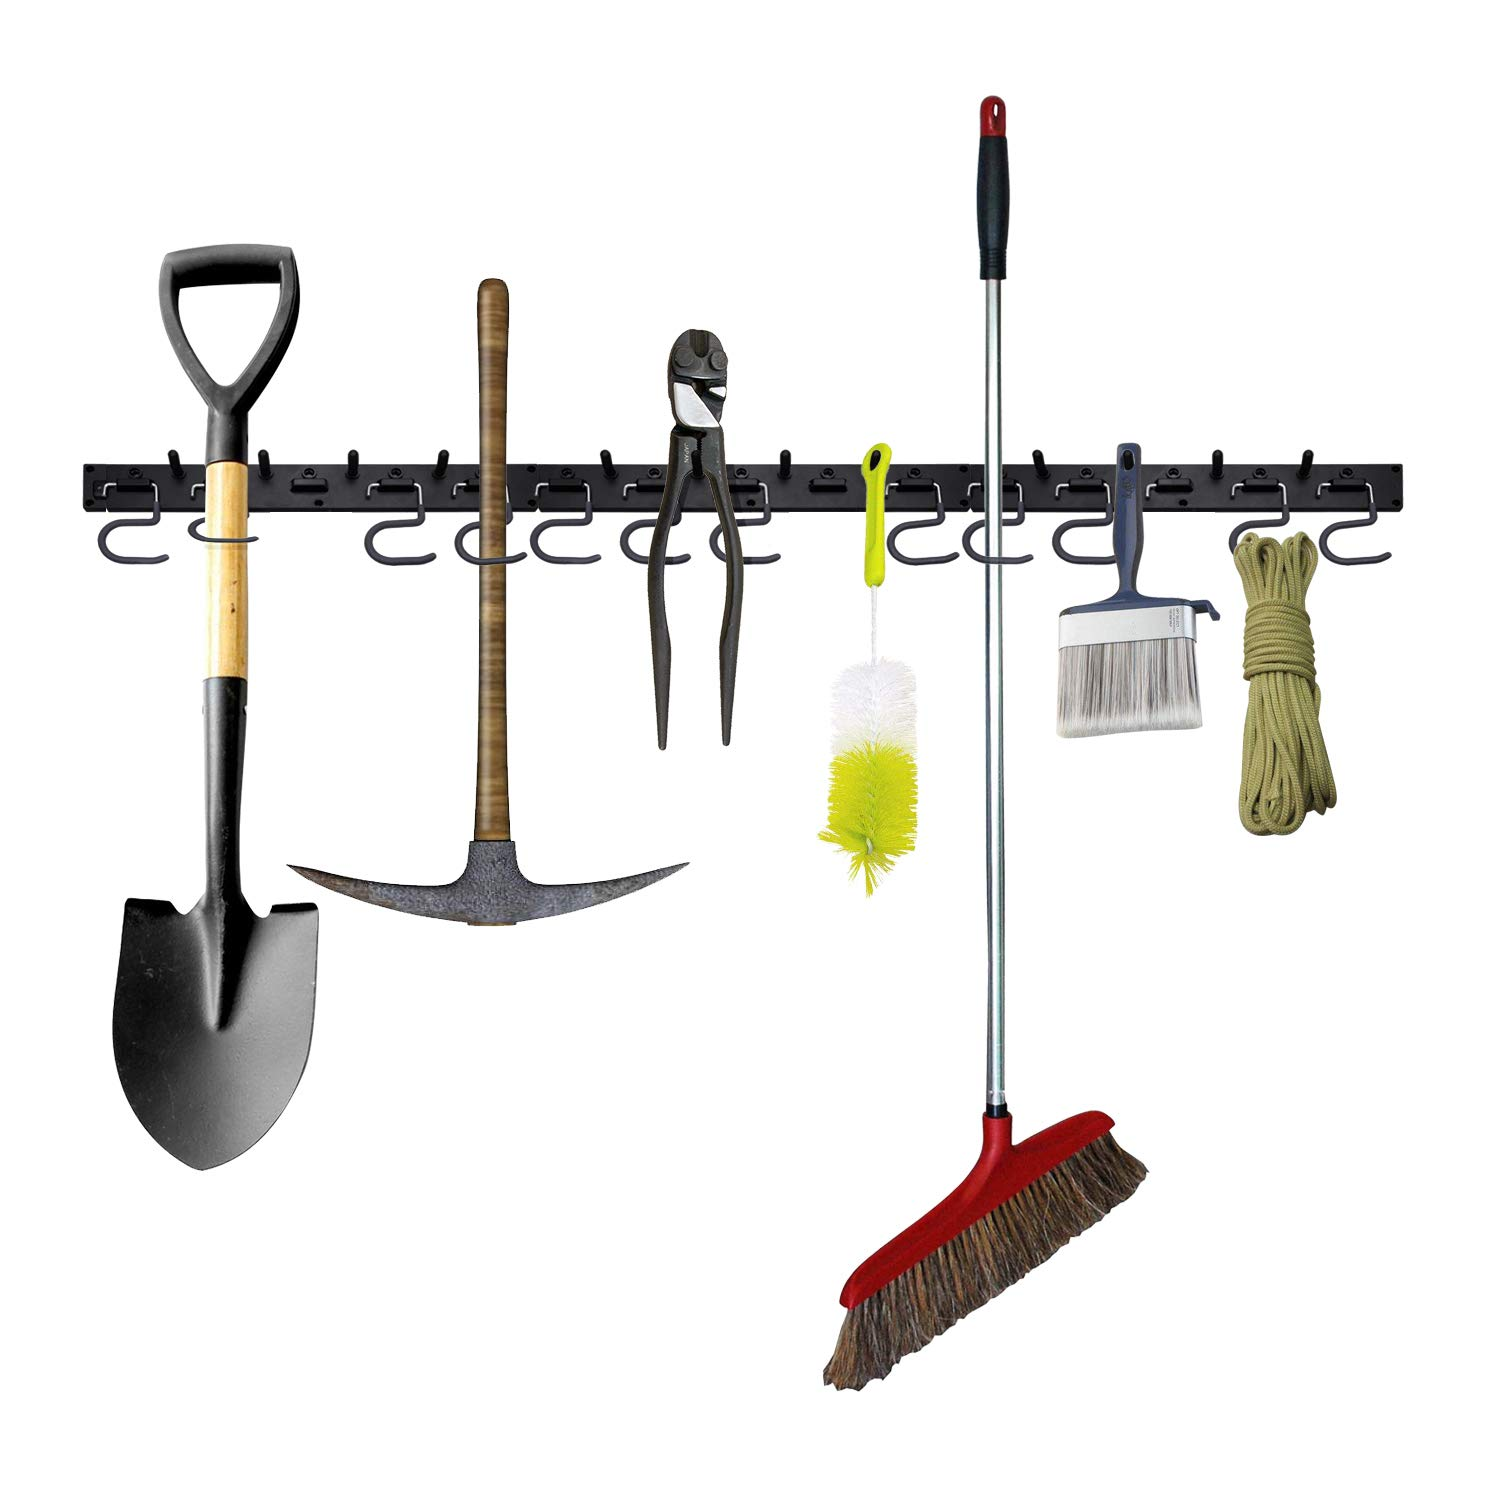 Adjustable Storage System 48 Inch, Wall Holders for Tools, Wall Mount Tool Organizer, Garage Organizer, Garden Tool Organizer, Garage Storage